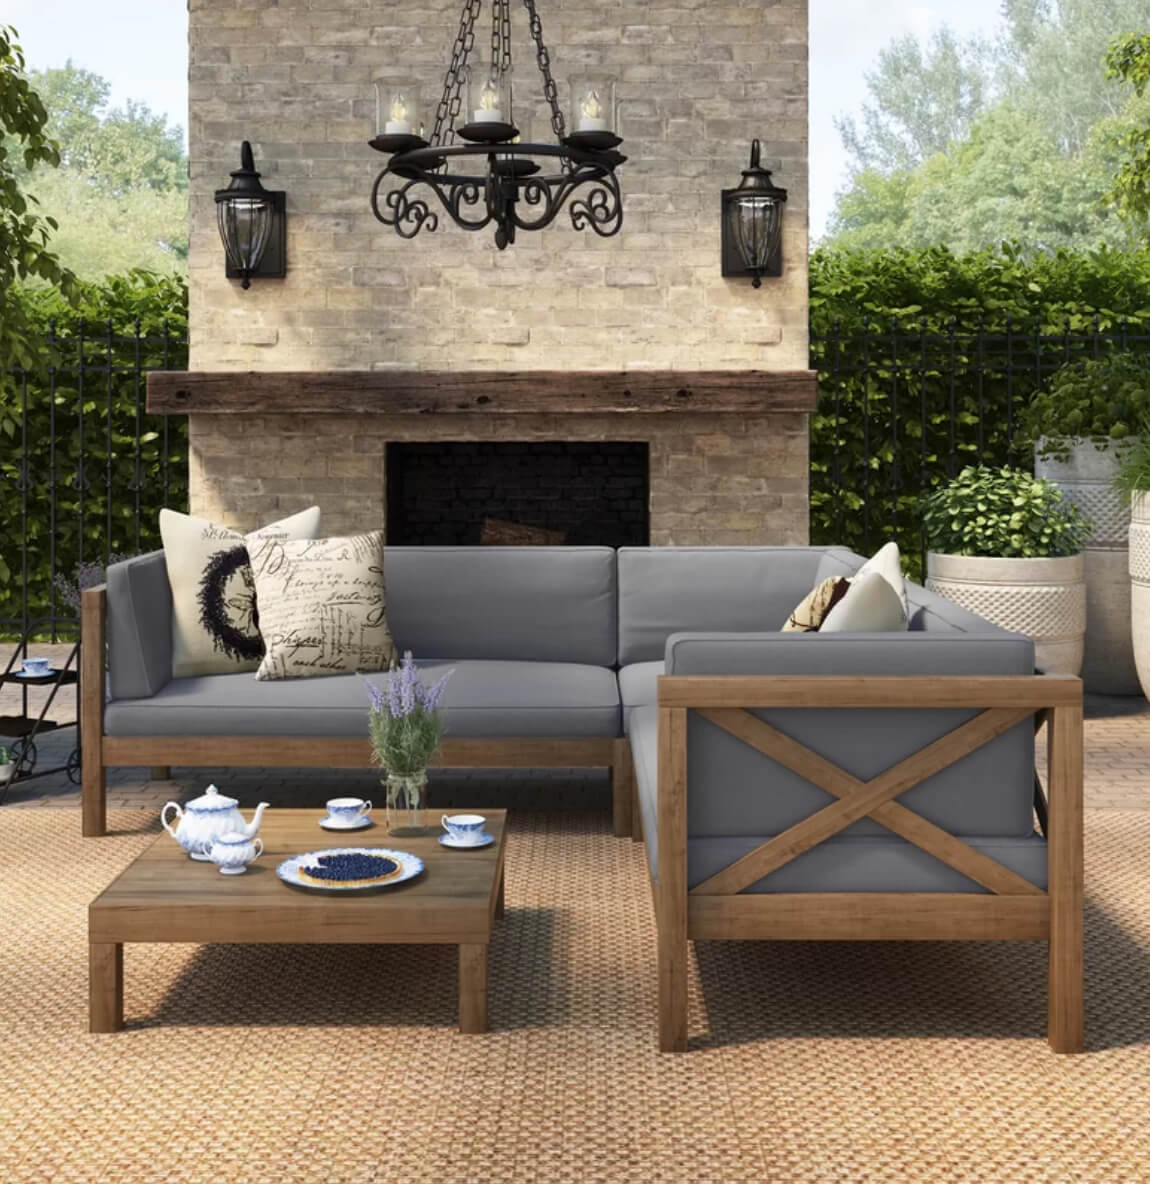 Outdoor living room summer decorating